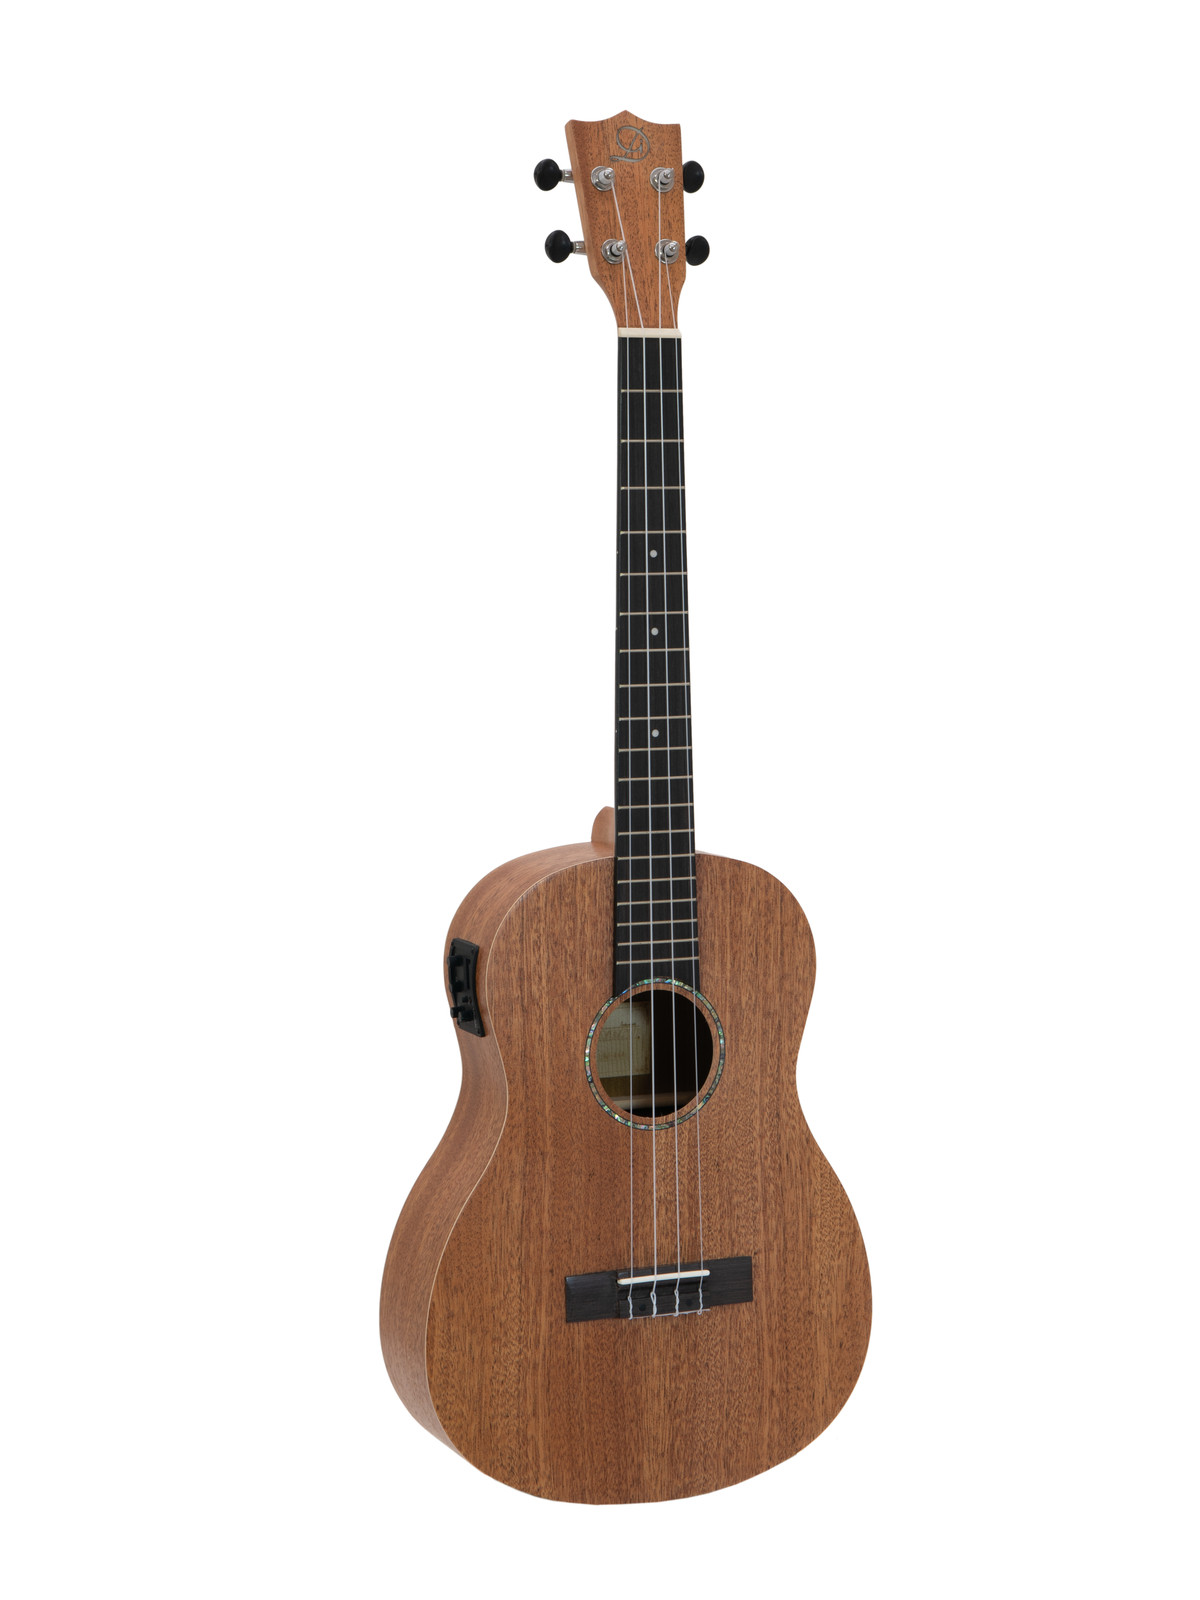 Ukulele baritone Mahogany Color DIMAVERY UK-500